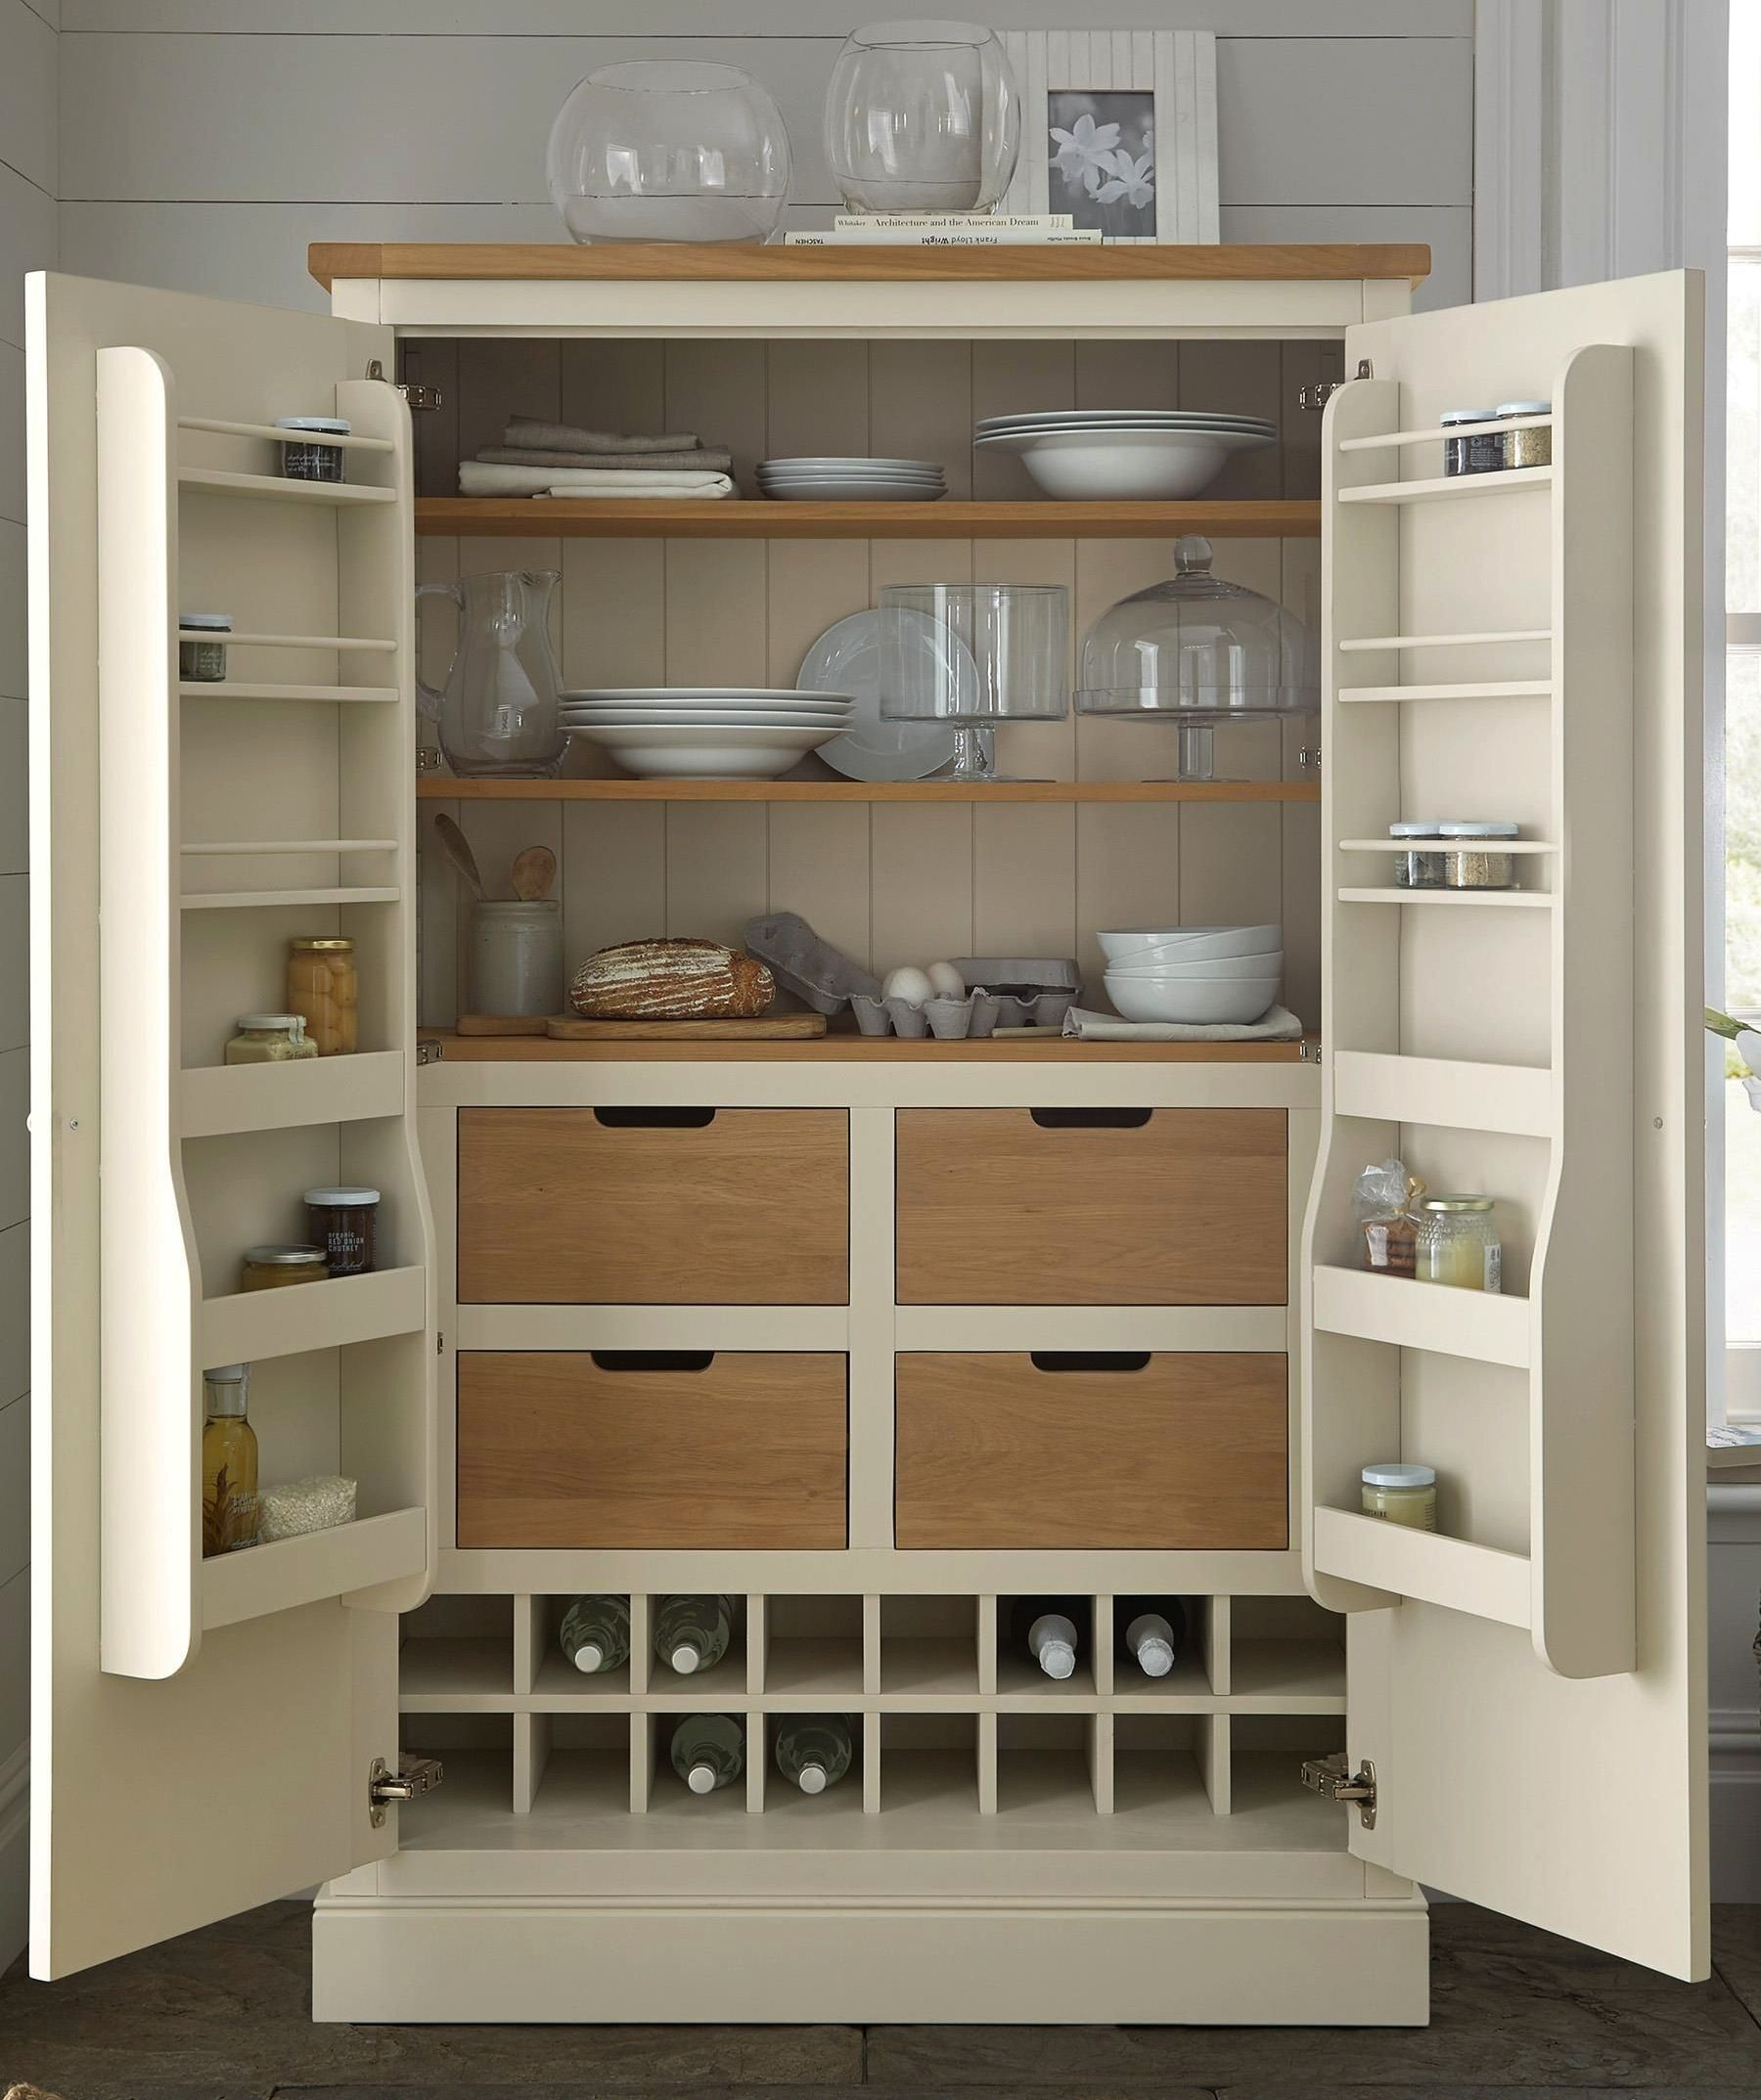 If You Need More Room For Keeping Food Or Crockery A Gorgeous Larder Unit Is The Ideal Solution